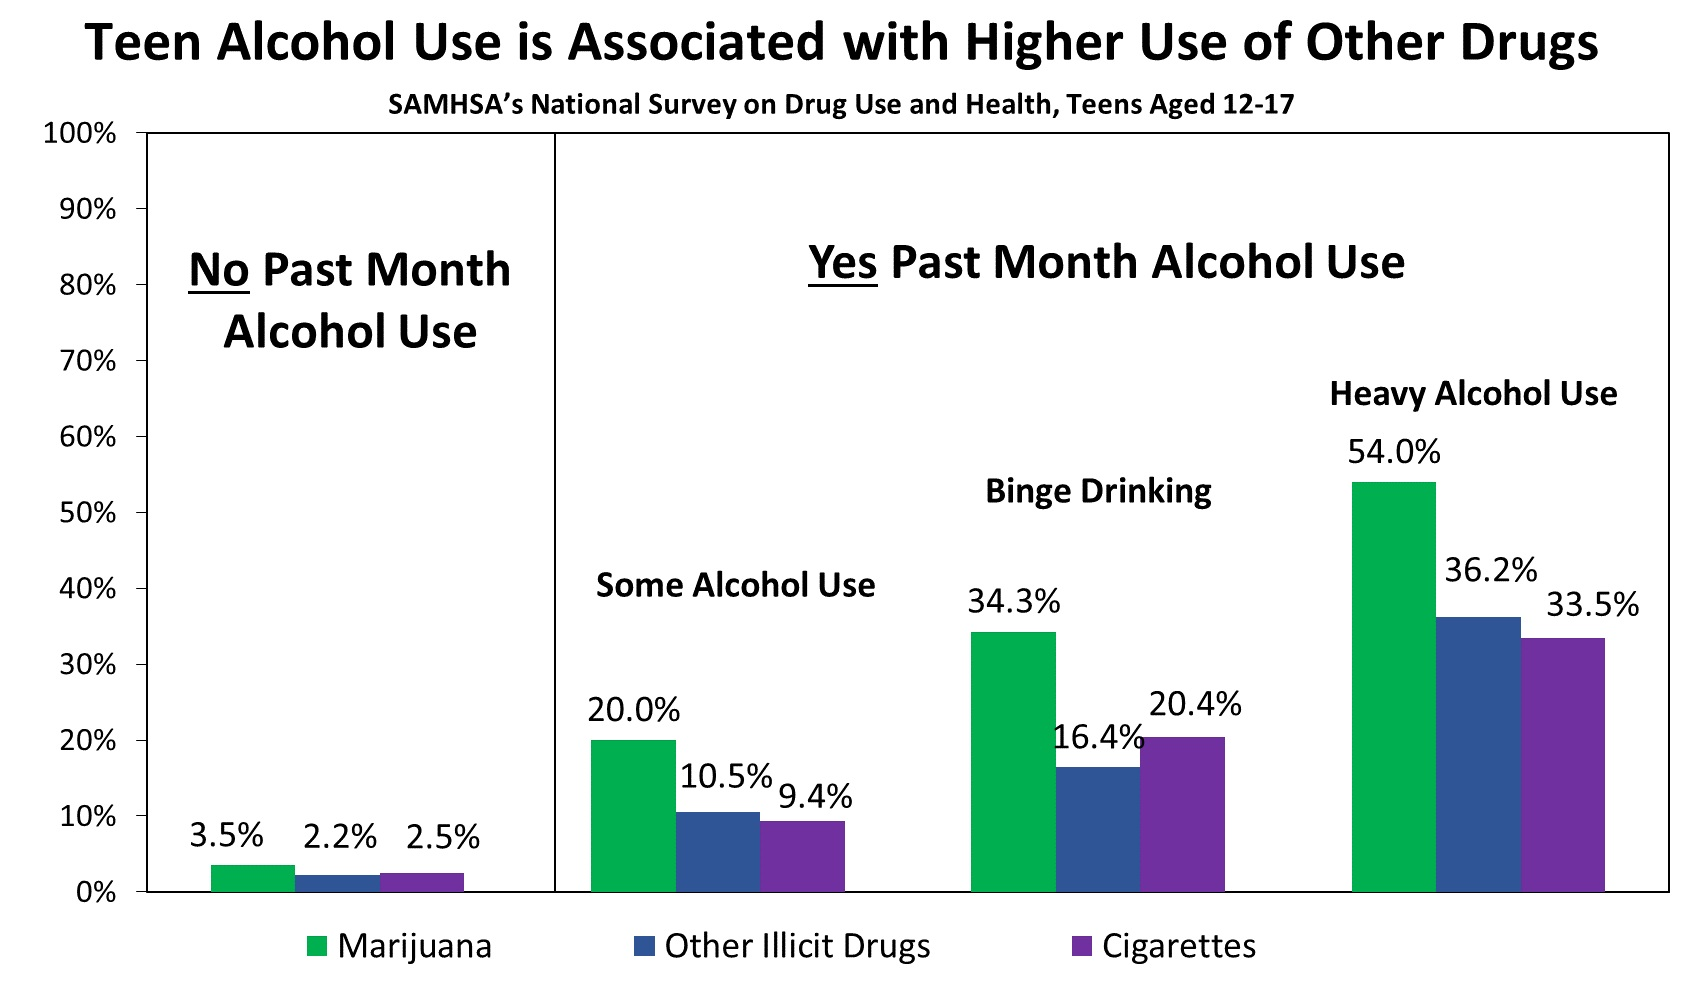 DuPont, R. L., Han, B., Shea, C. L., & Madras, B. K. (2018).  Drug use among youth: national survey data support a common liability of all drug use .  Preventive Medicine , 113, 68-73.